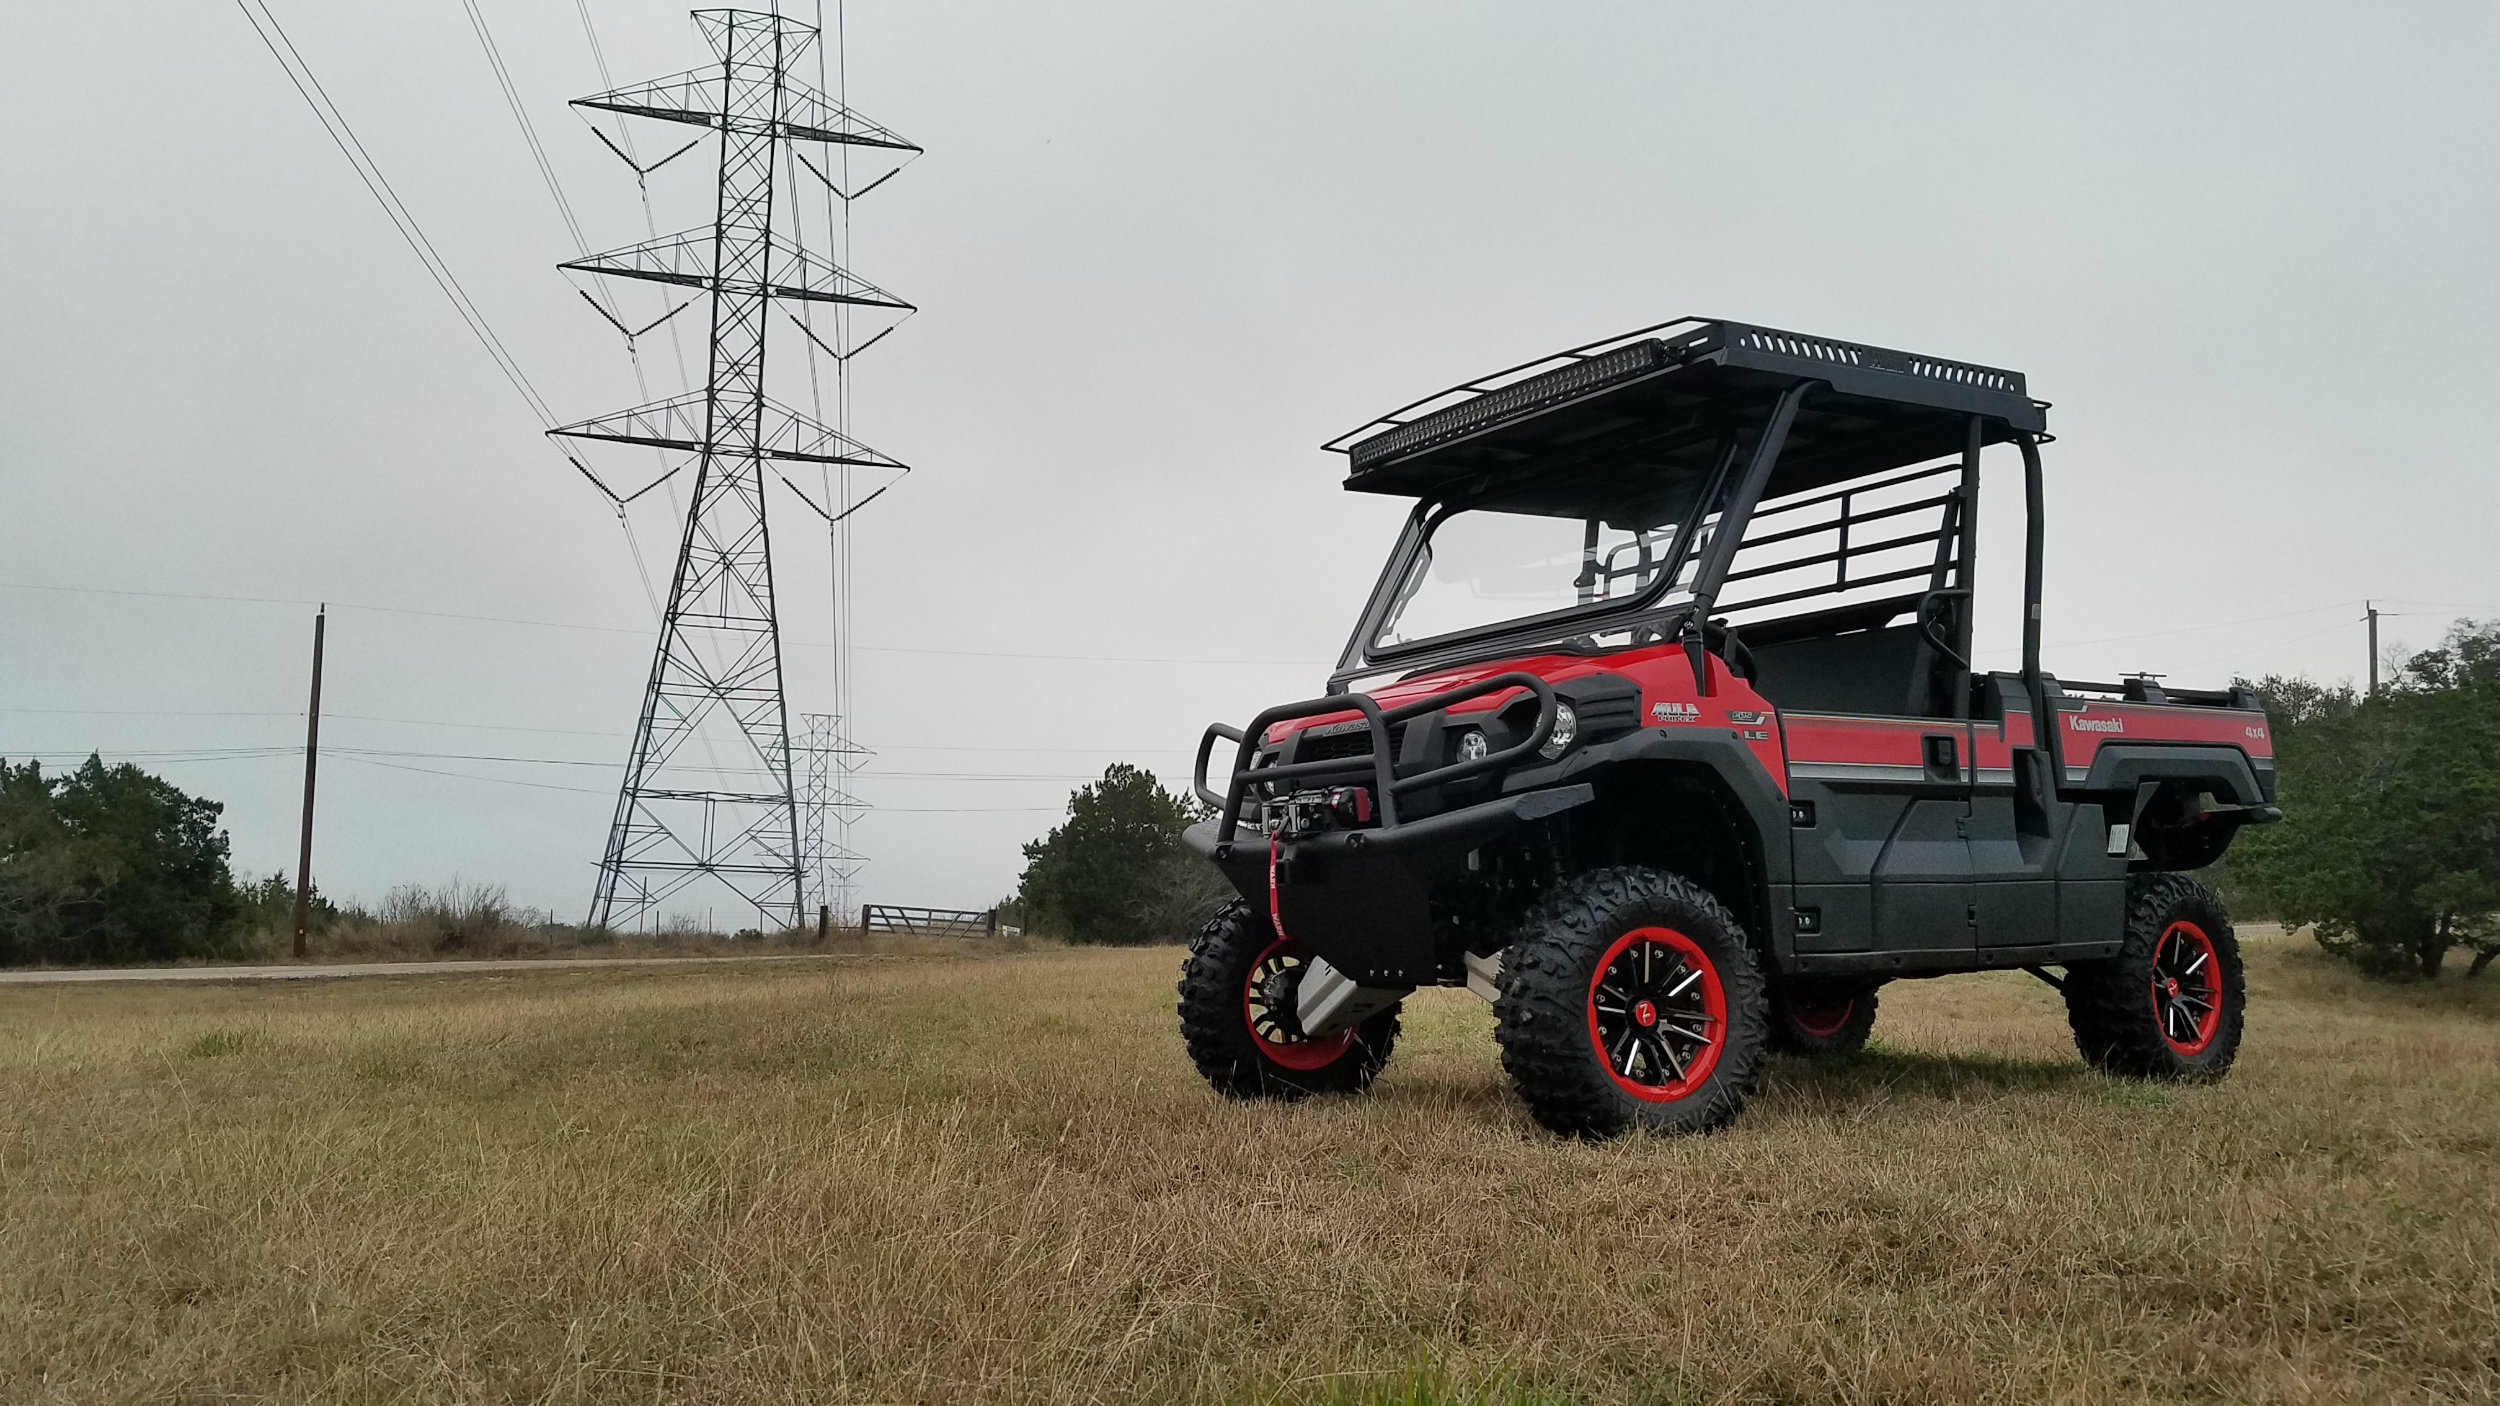 kawasaki-mule-pro-fx-metal-roof-utility-rack-with-bumper-and-windshield.jpg